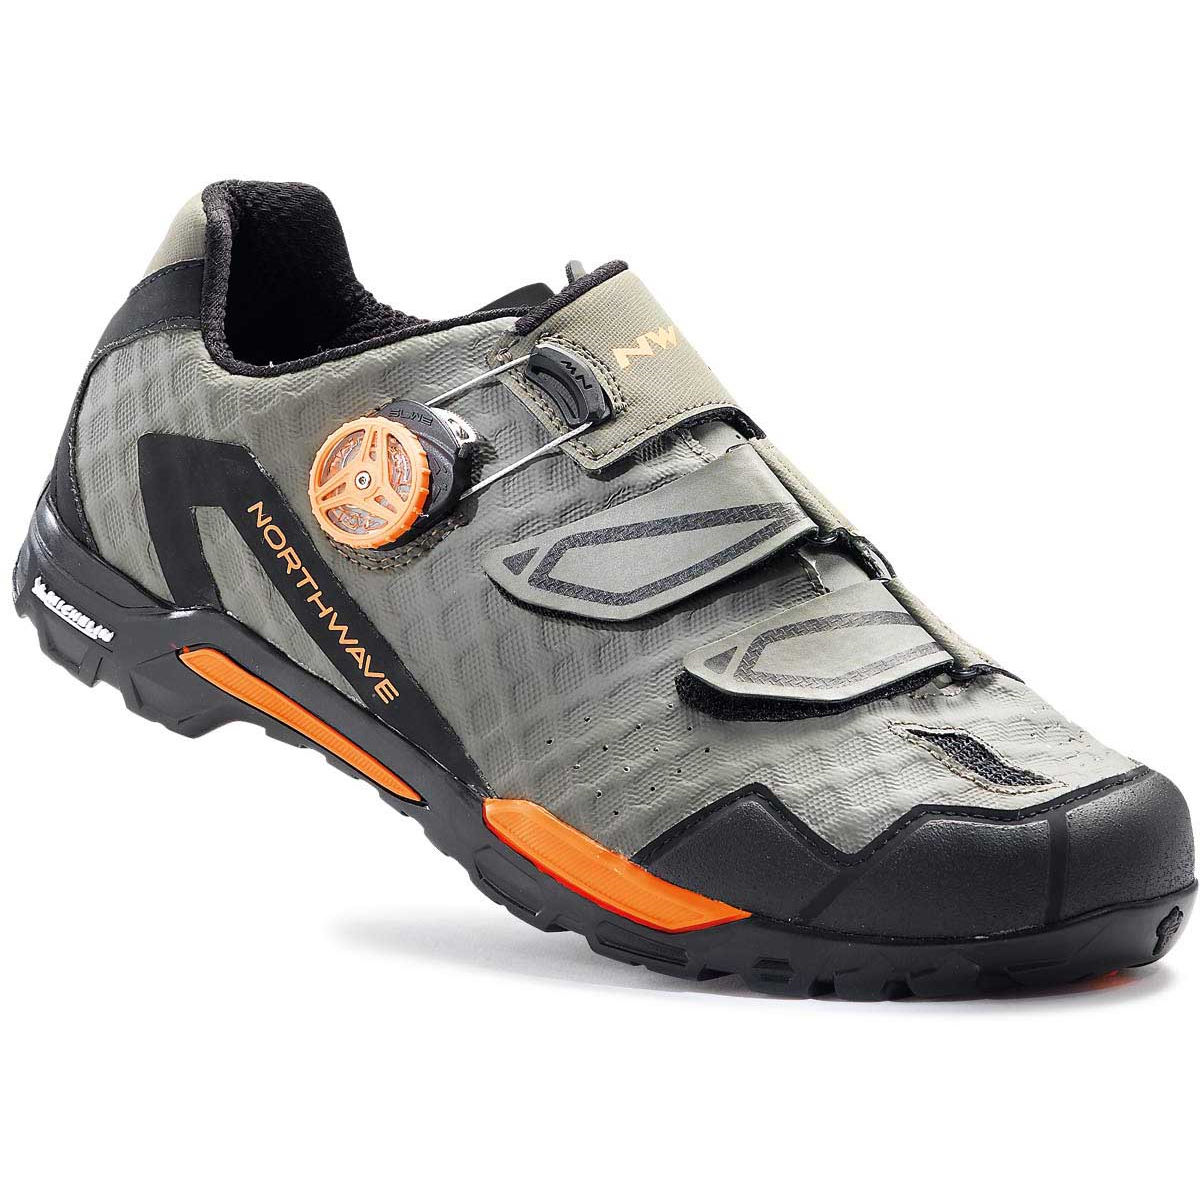 Chaussures Northwave Outcross Plus - 39 Gris Chaussures VTT